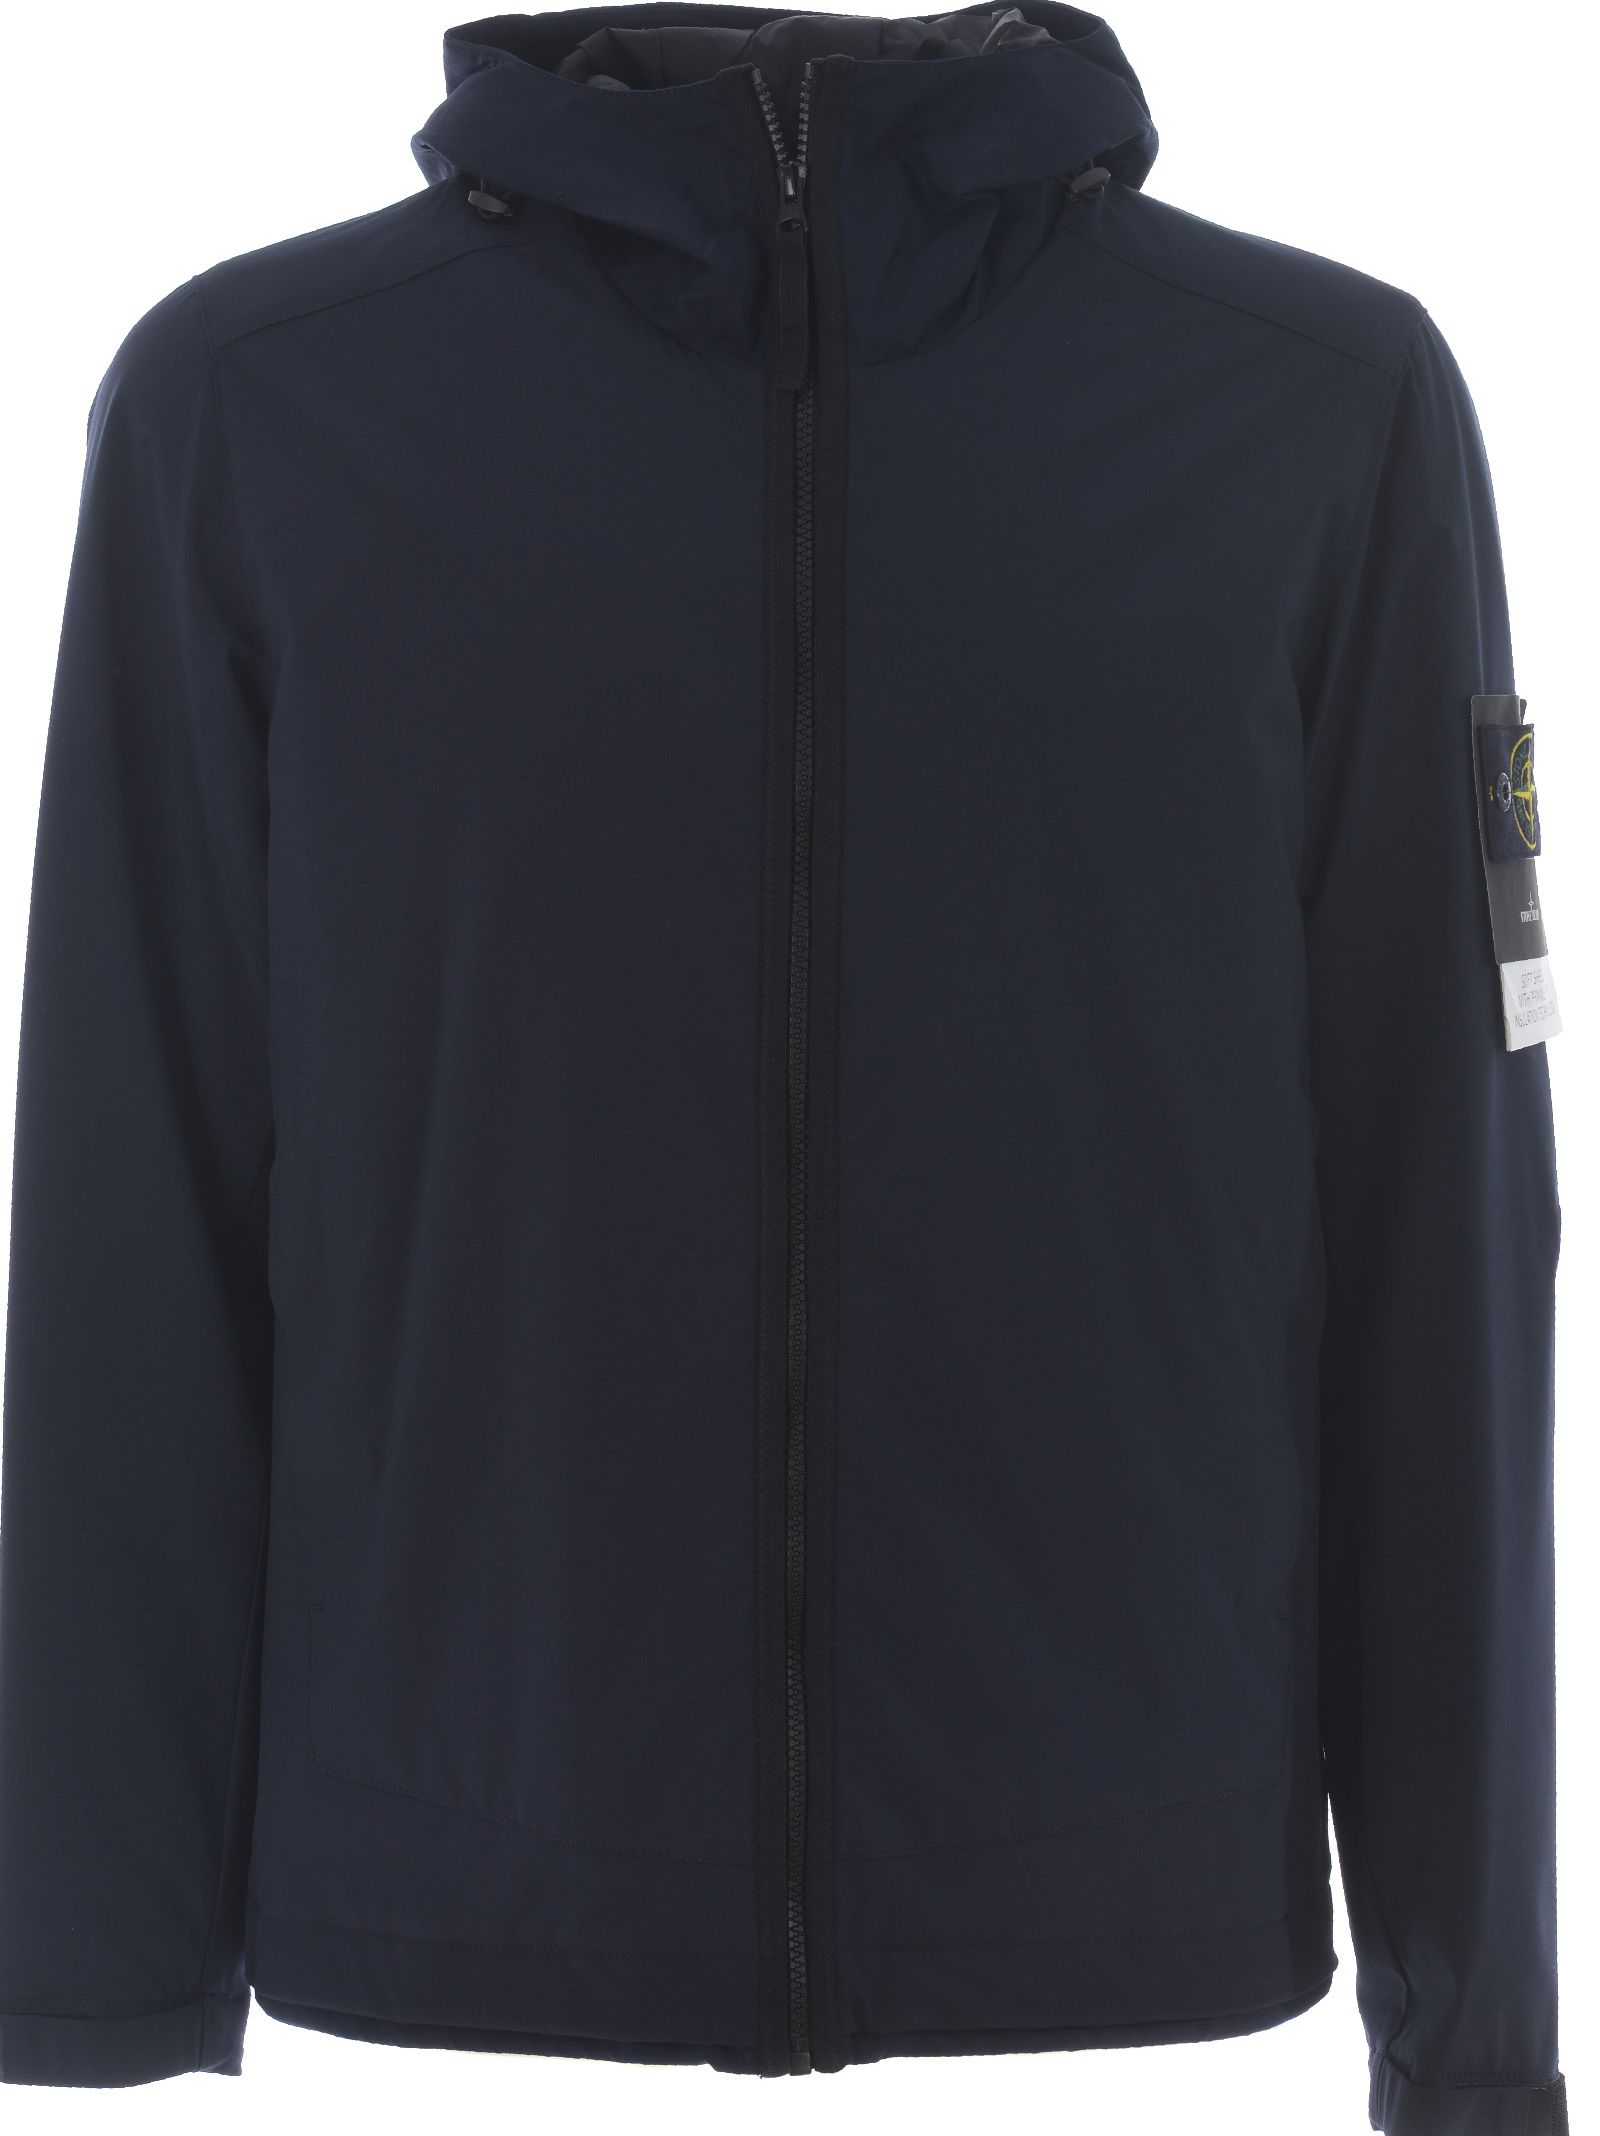 stone island stone island logo patch windbreaker blu scuro men 39 s raincoats italist. Black Bedroom Furniture Sets. Home Design Ideas